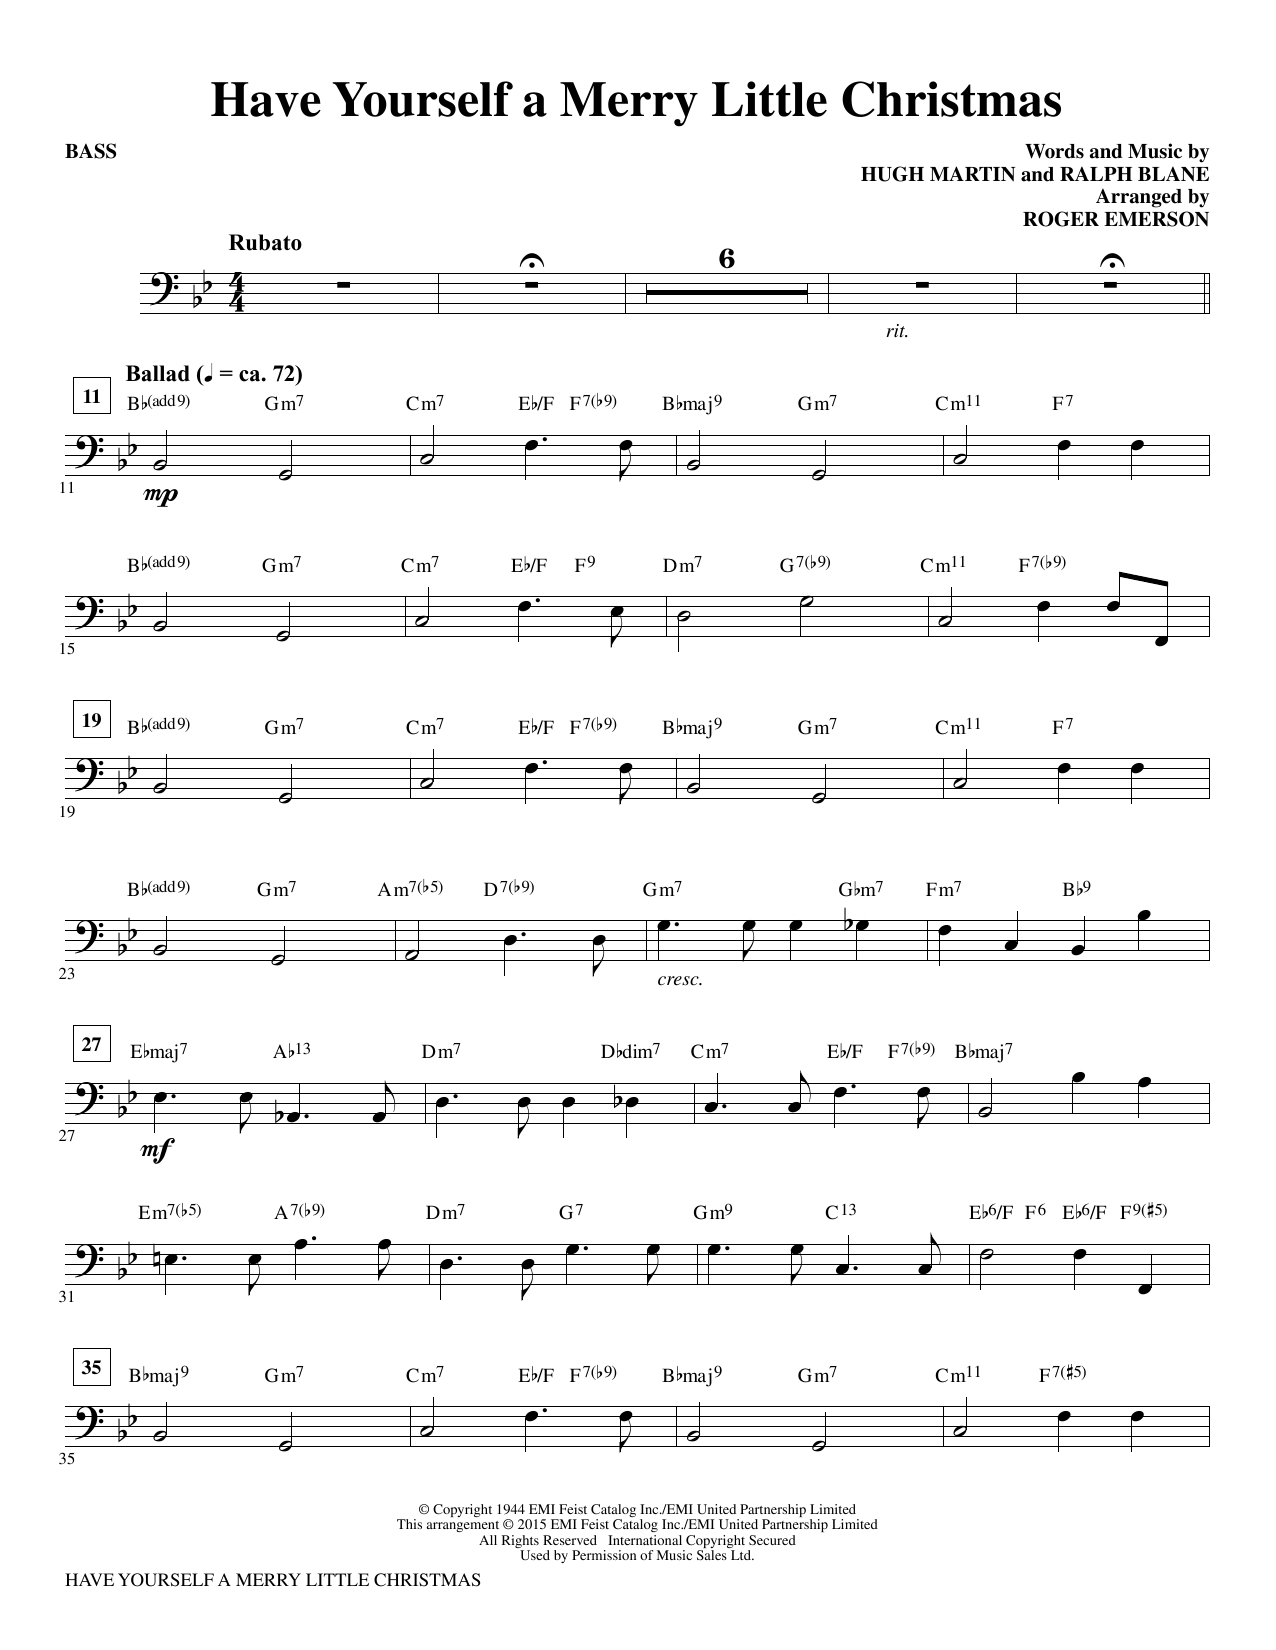 Have Yourself A Merry Little Christmas Chords Have Yourself A Merry Little Christmas